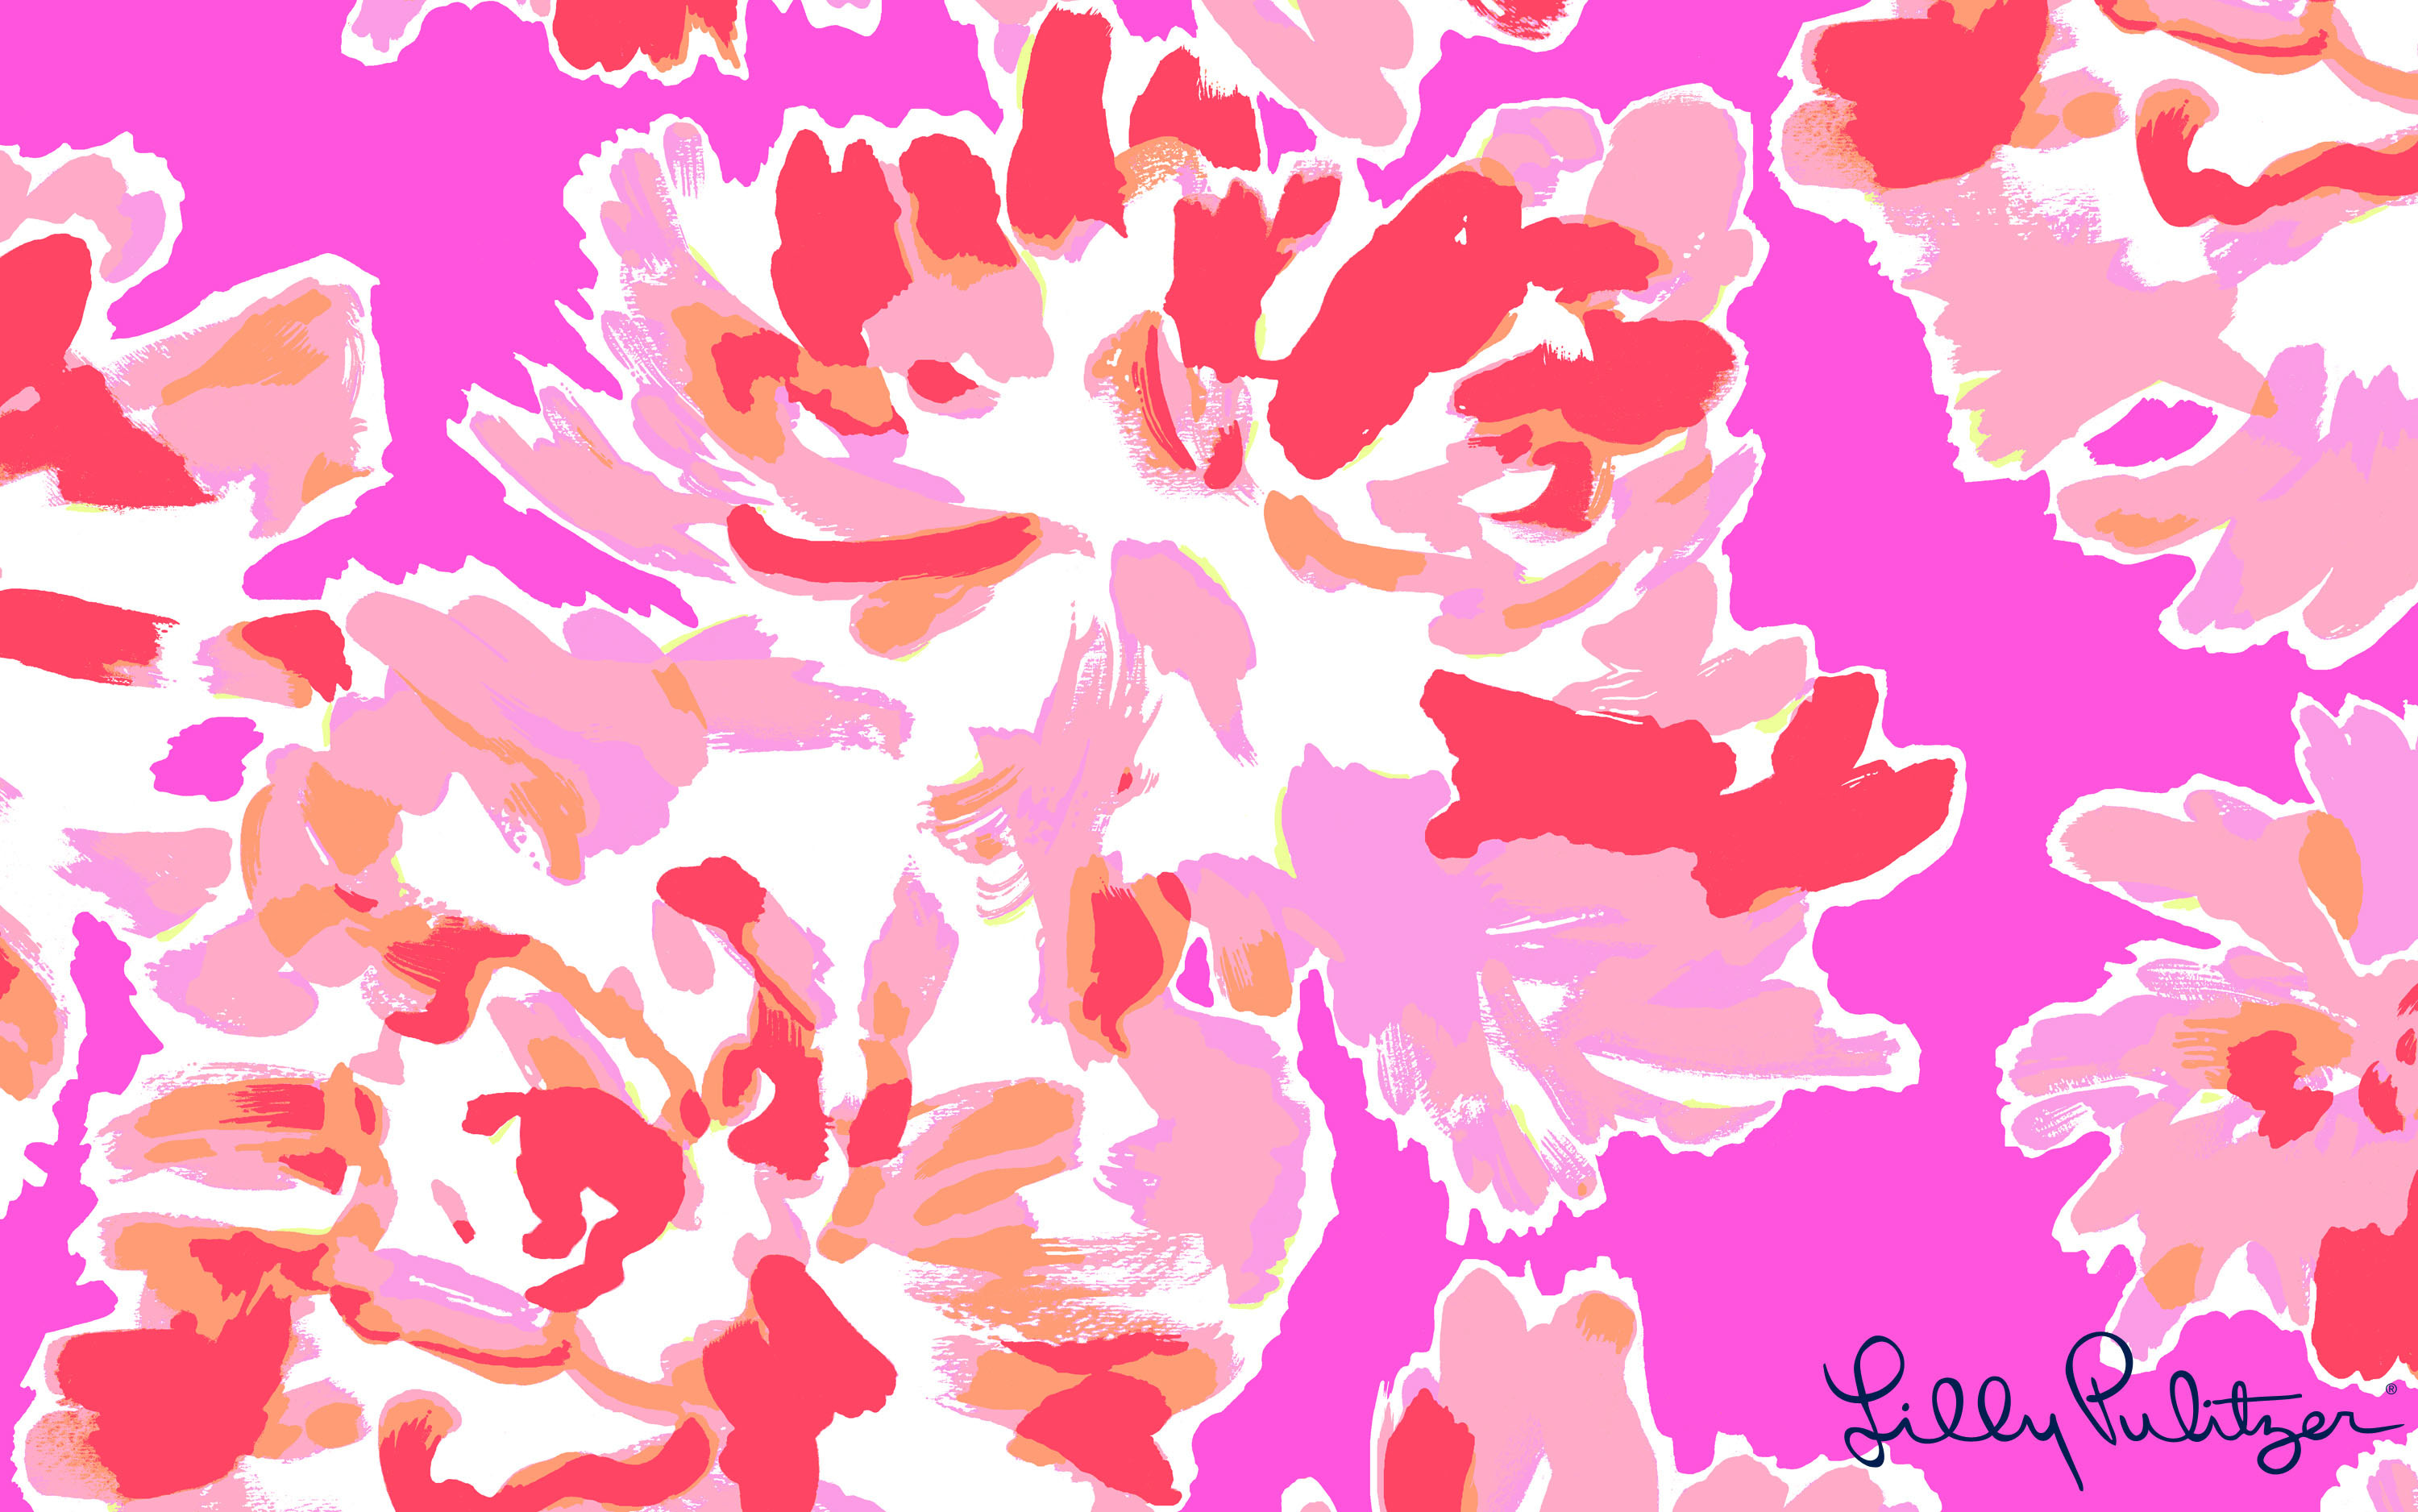 3000x1876 Monogram Lilly Pulitzer Desktop Wallpaper